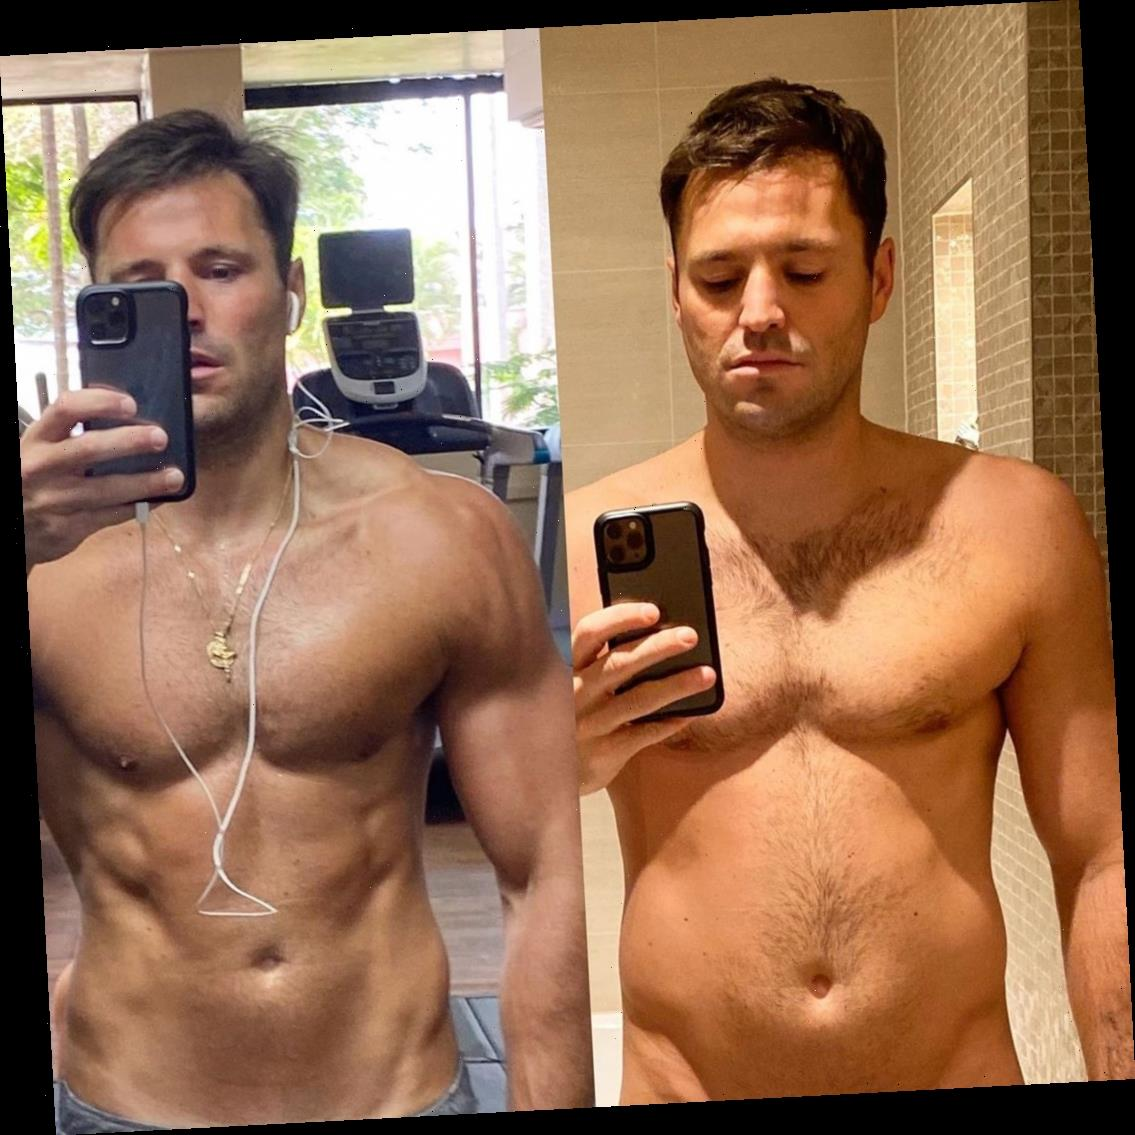 Mark Wright goes topless to show off weight loss after eating too much 'indulgent food' over Christmas – The Sun